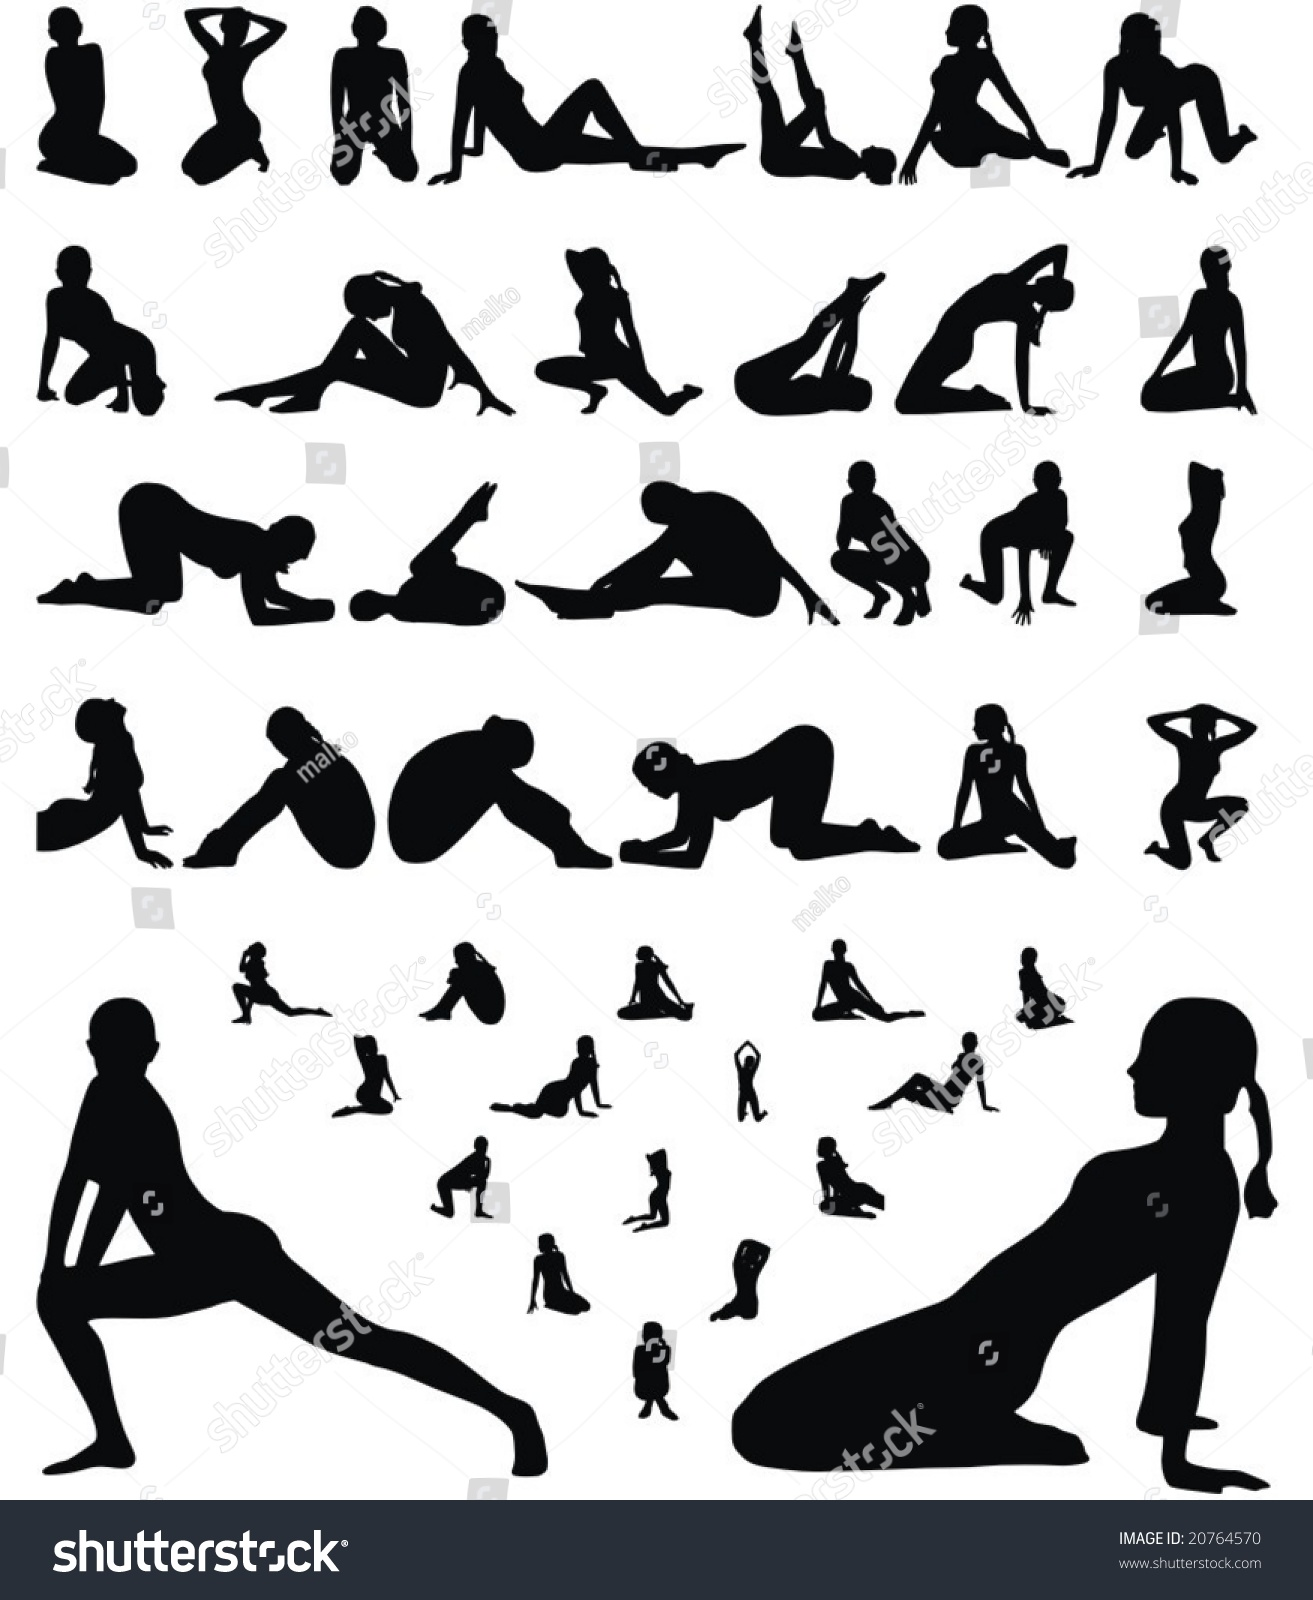 Woman Erotic And Sporty Silhouettes Collection Vector Illustration